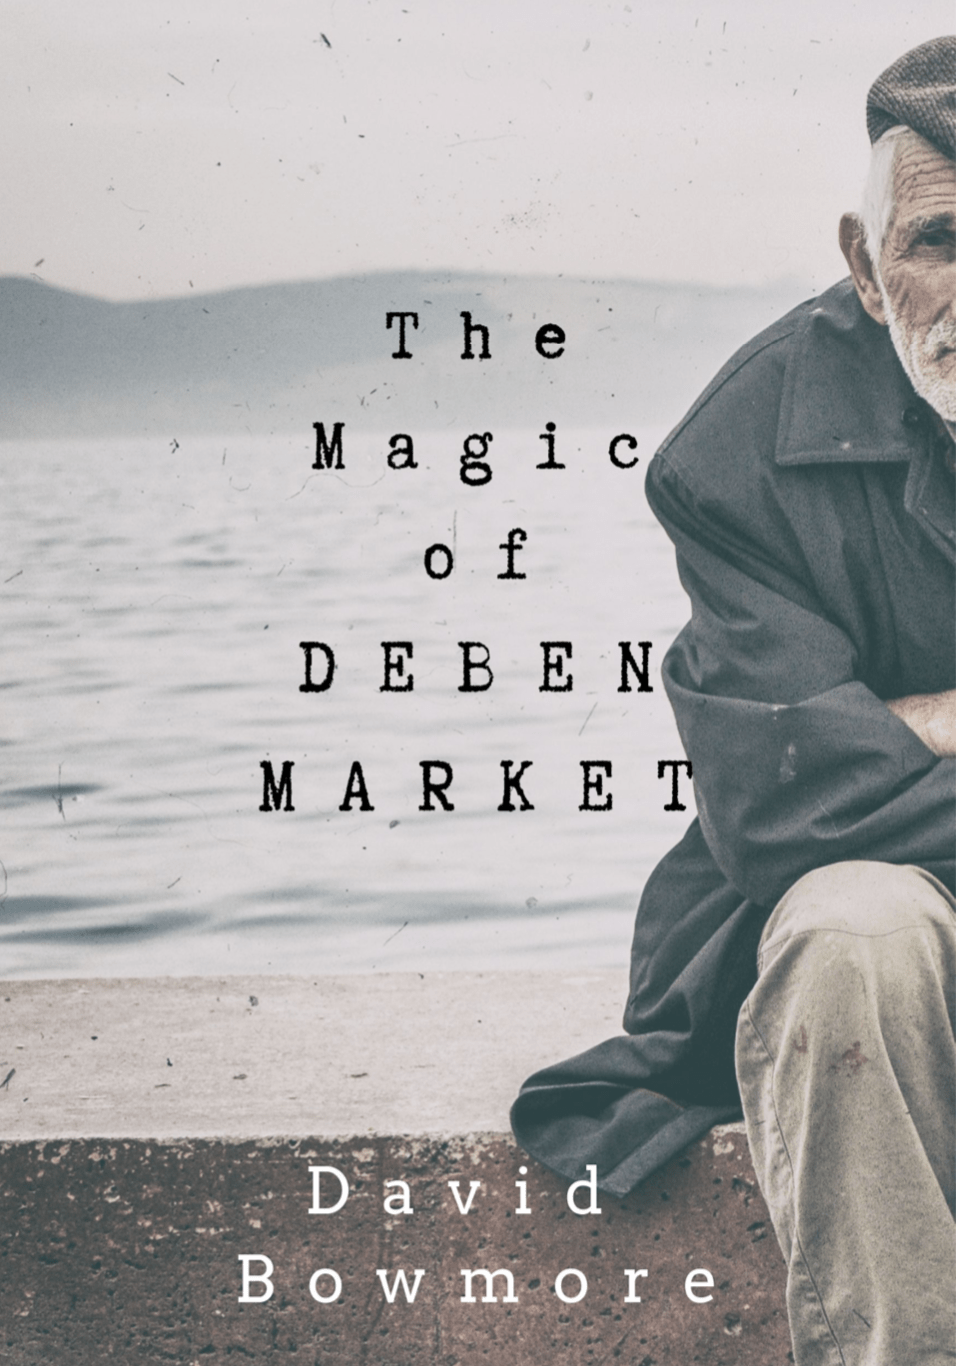 Deben Market Mock Up Cover